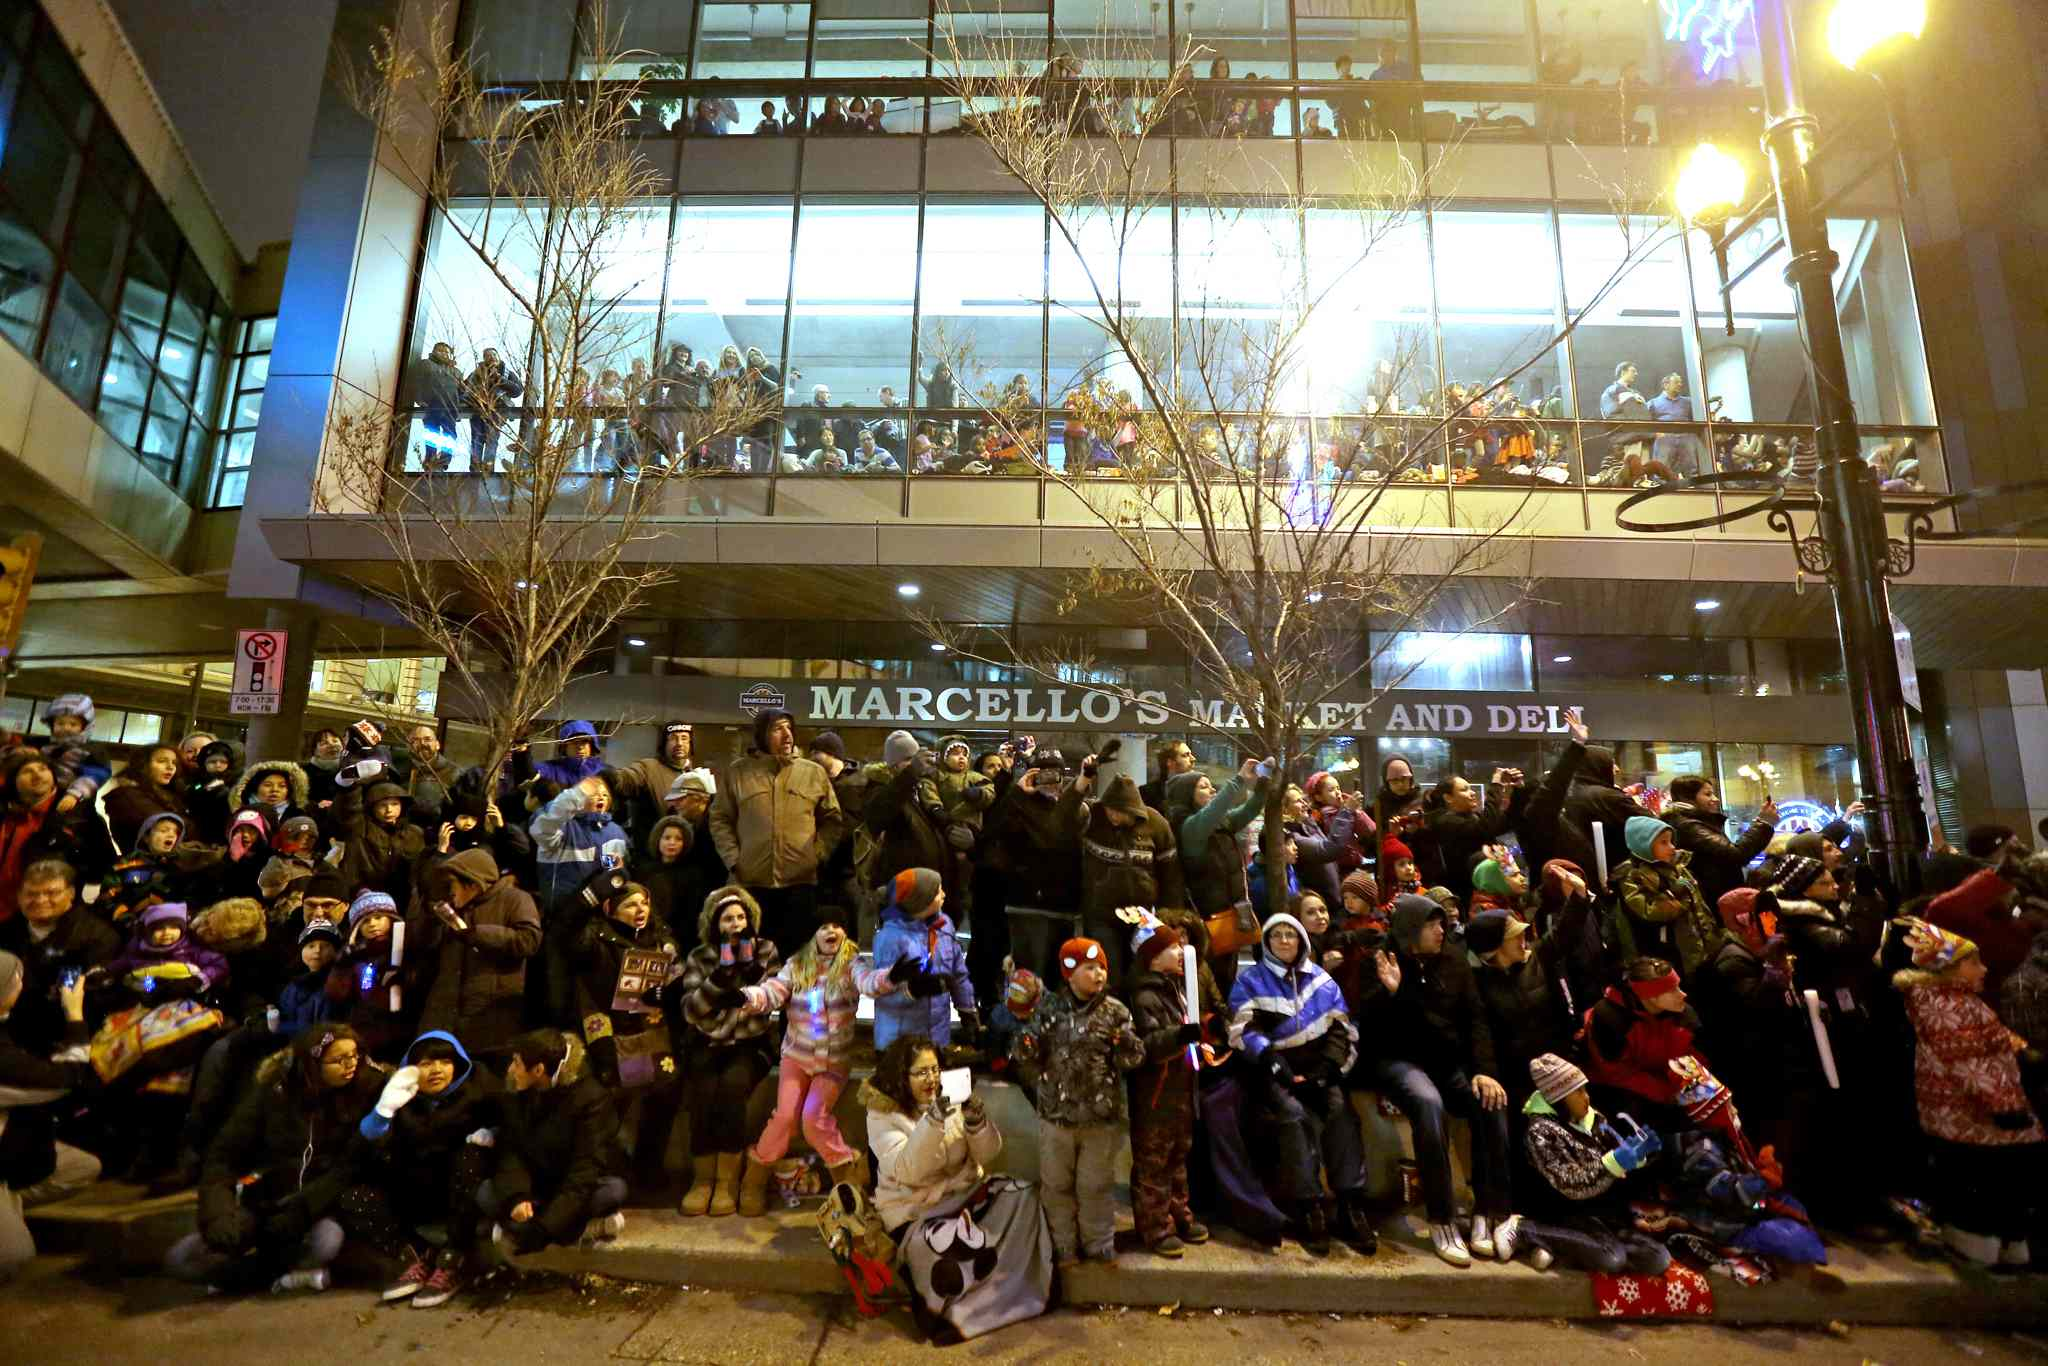 Large crowds gathered in front of the Manitoba Hydro building.